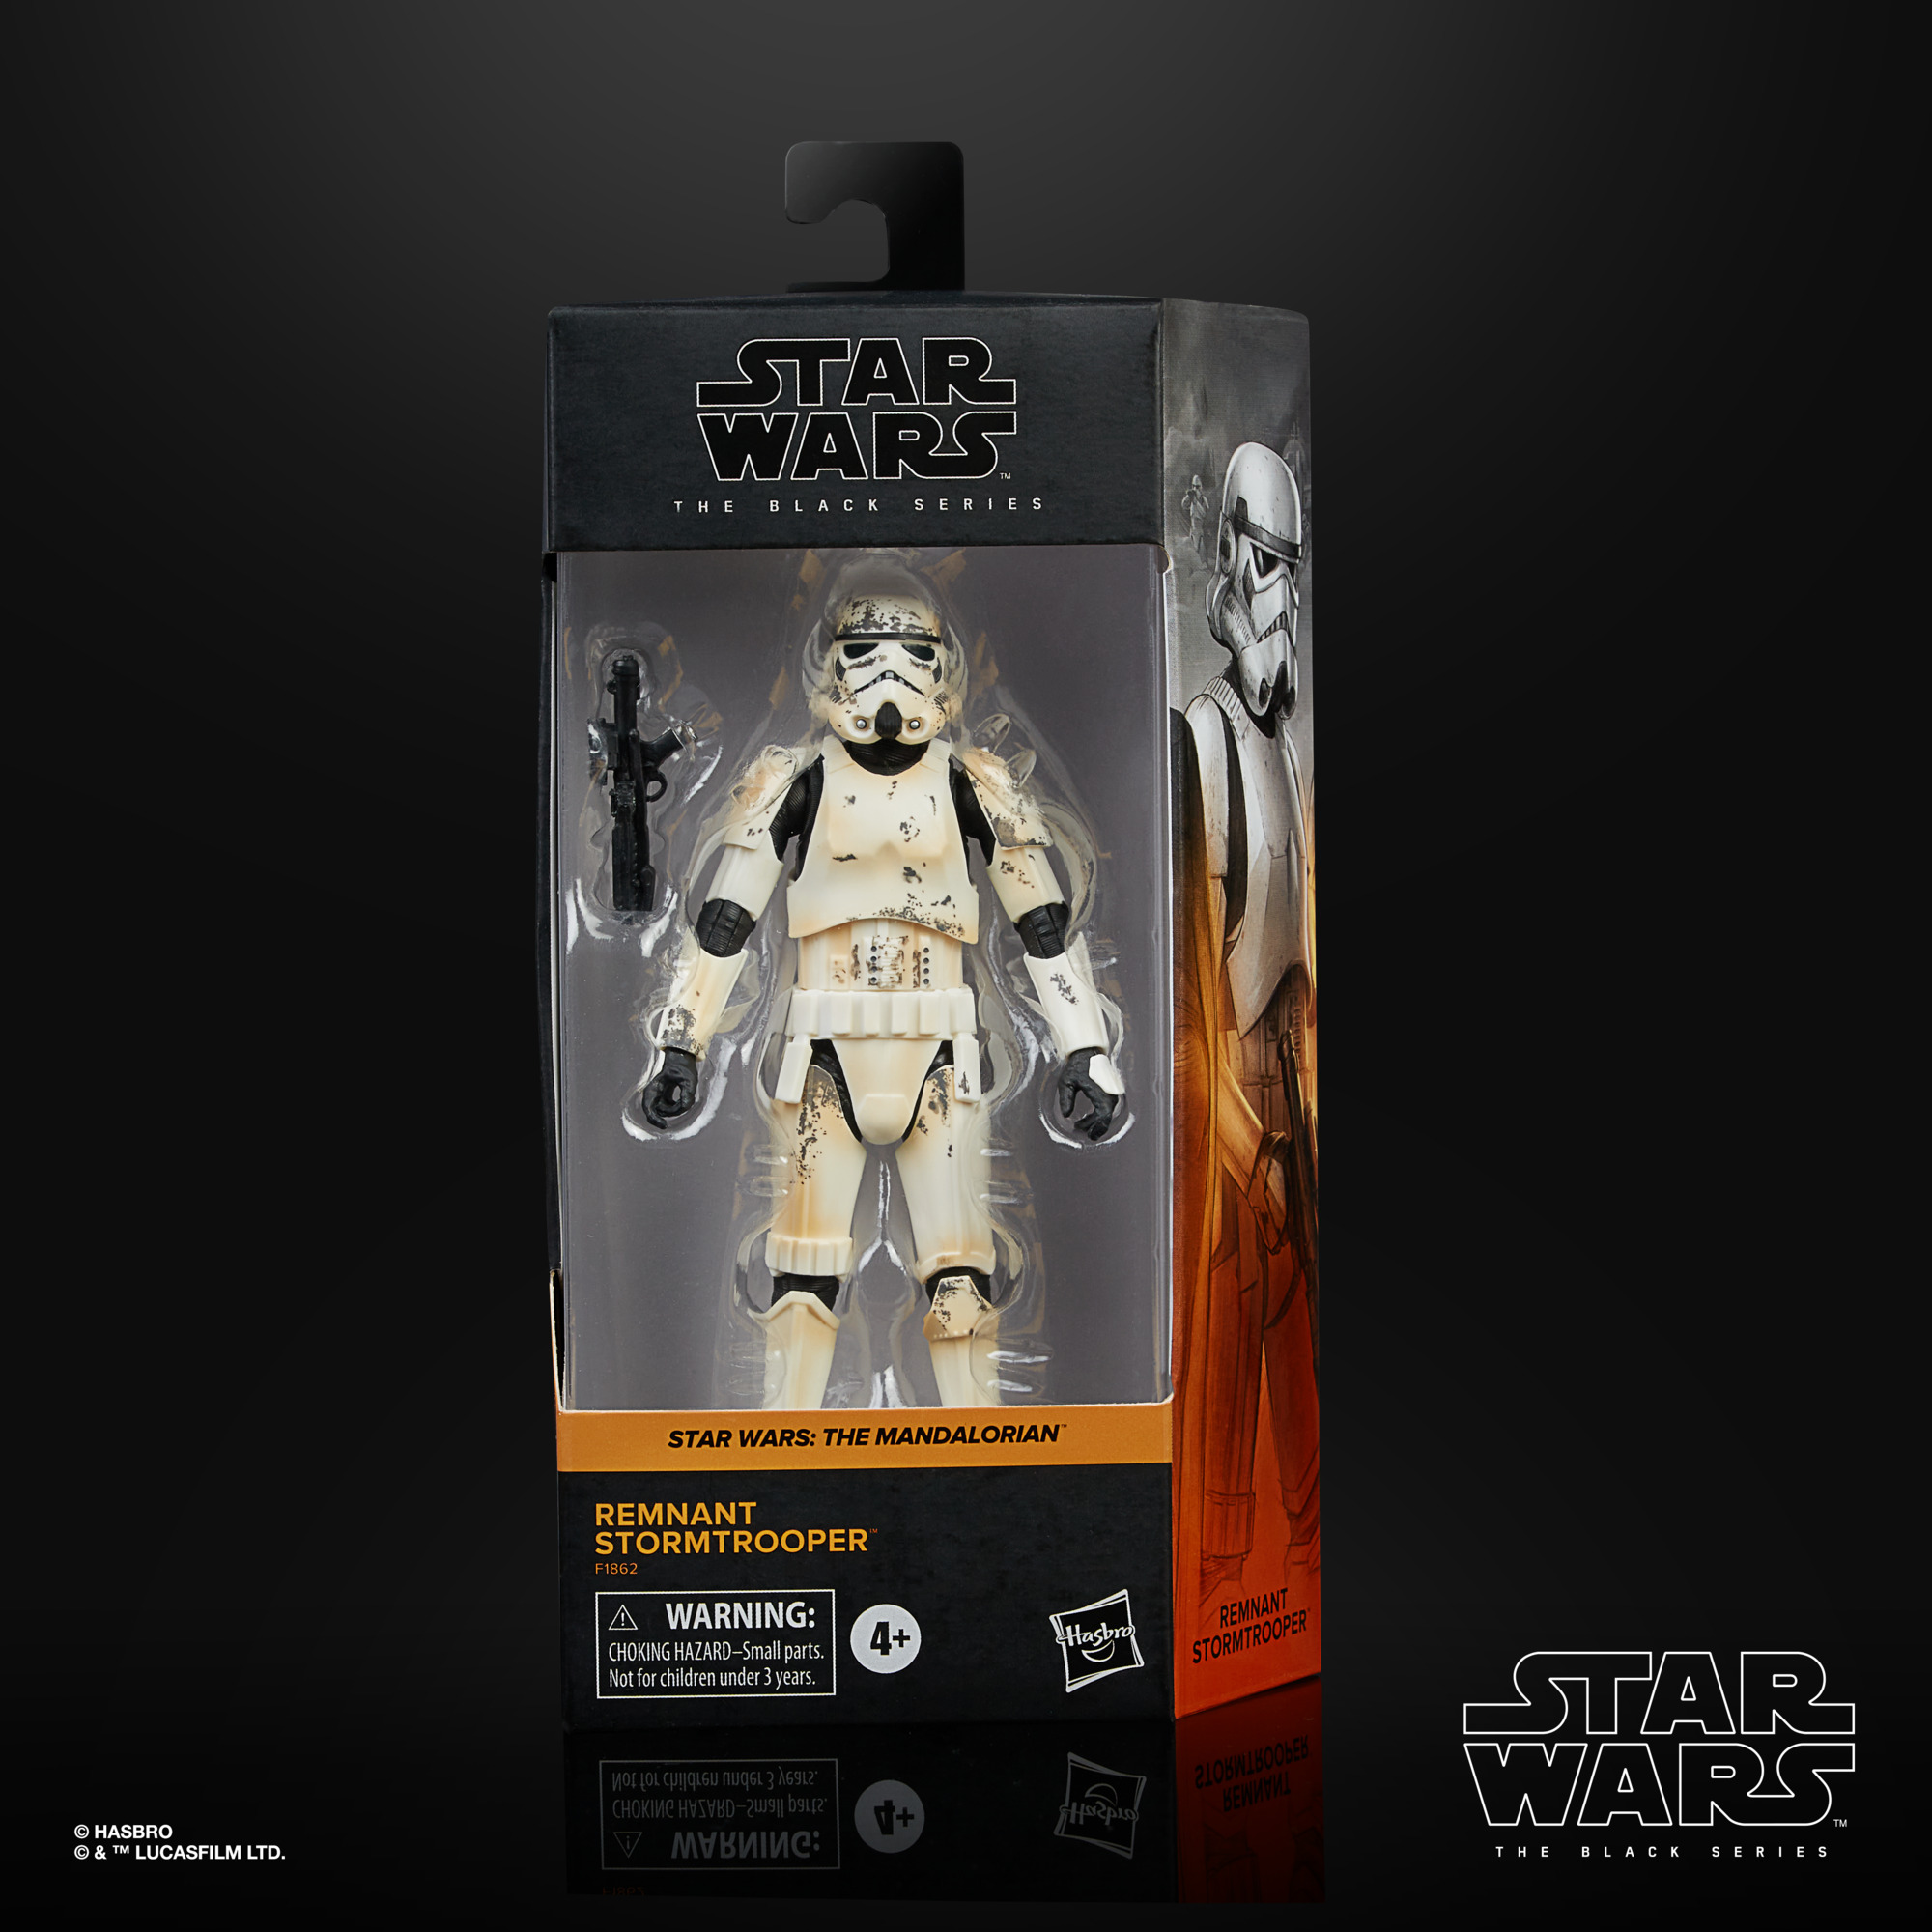 Star Wars The Black Series Remnant Stormtrooper Exclusive Action Figure 15cm HASF1862 5010993813360